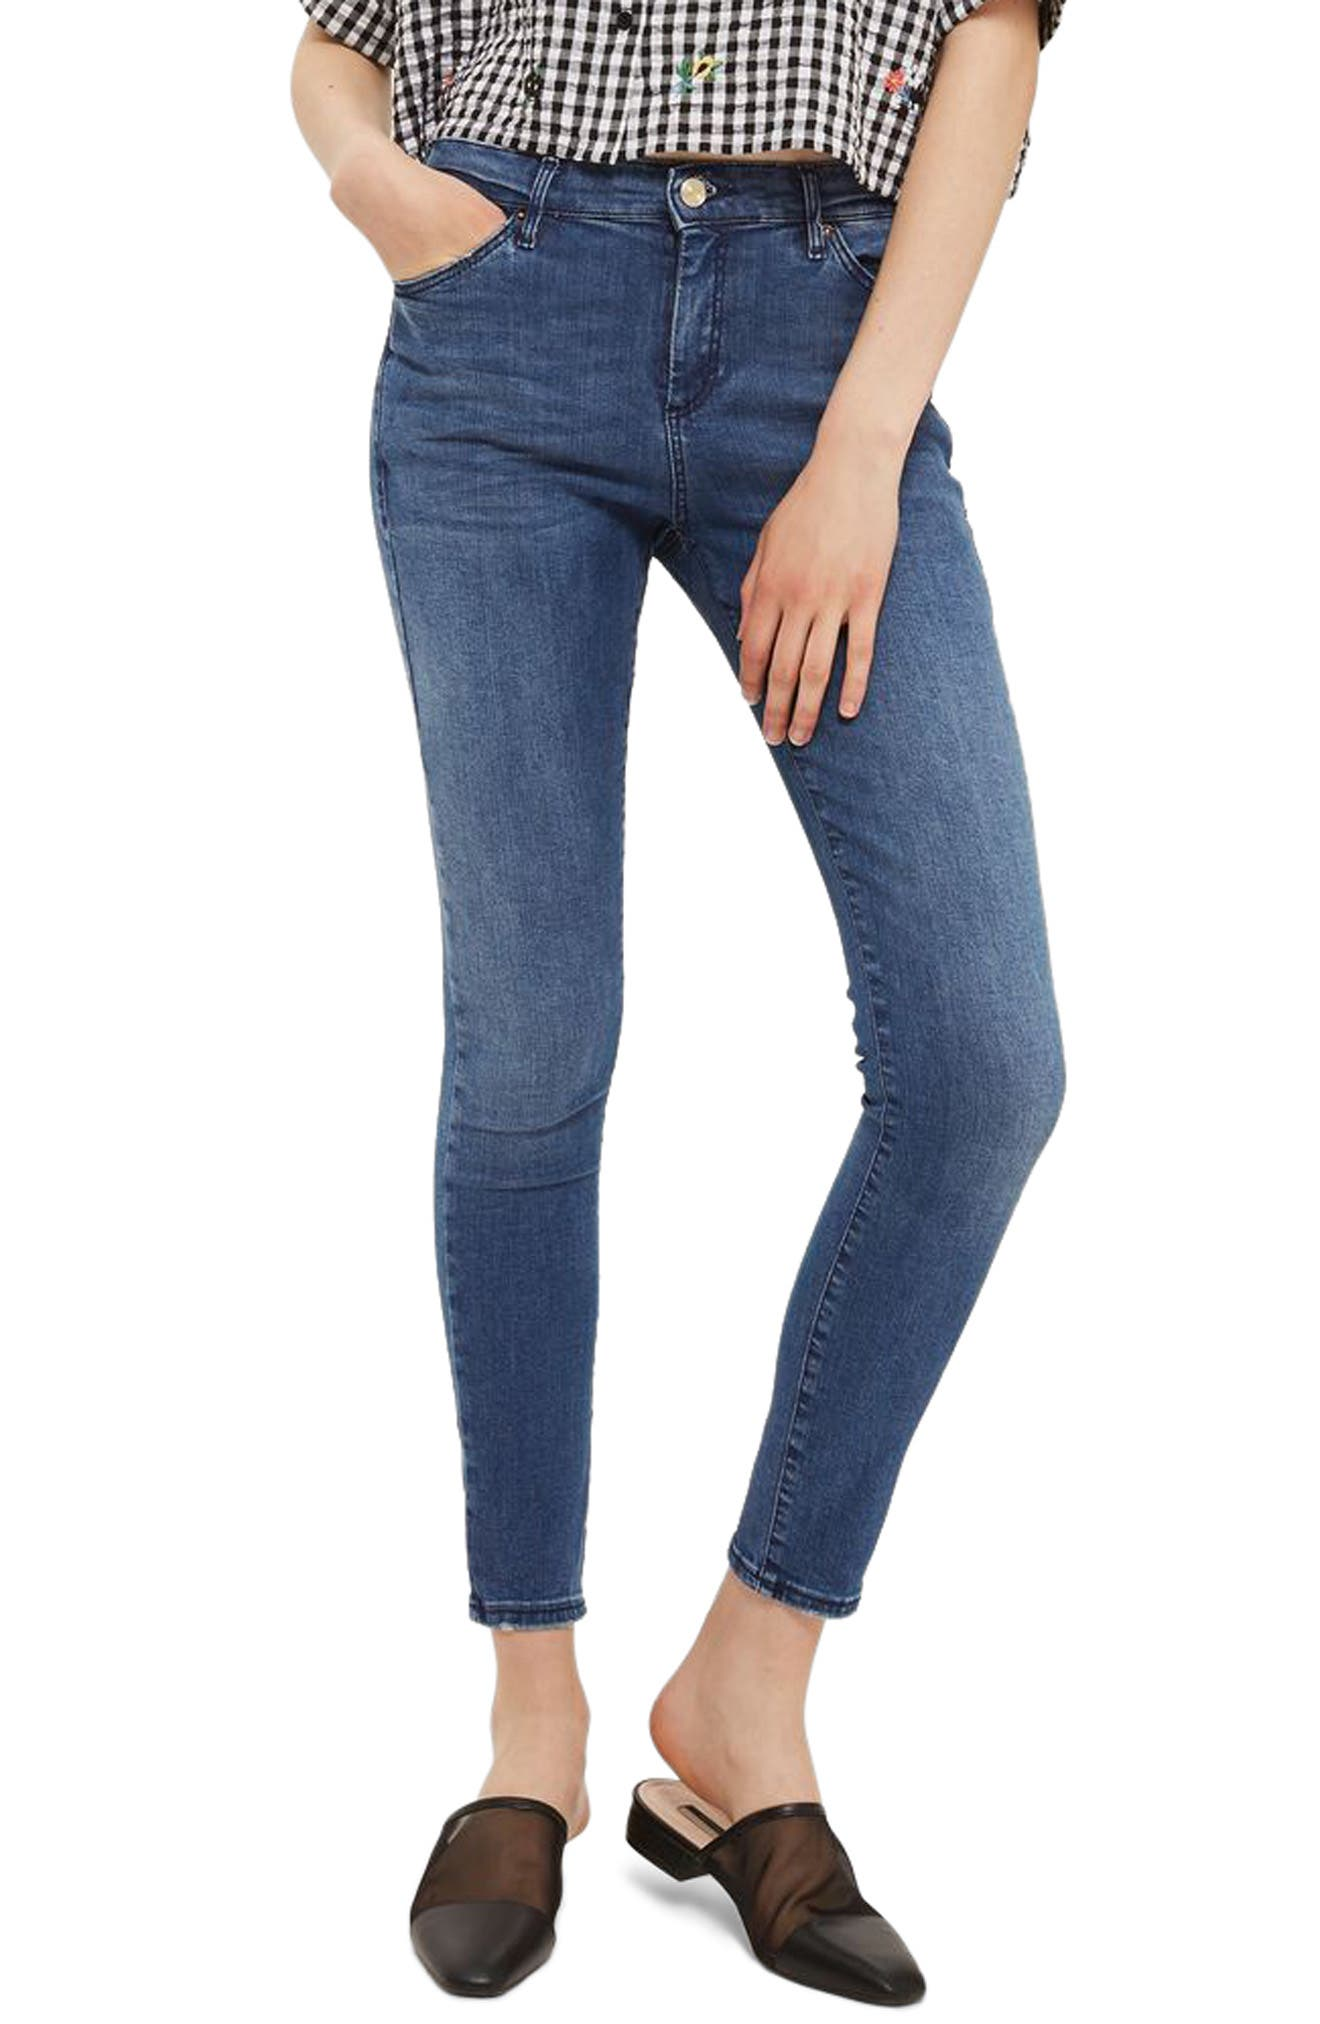 Sidney Skinny Ankle Jeans,                             Main thumbnail 1, color,                             Mid Denim